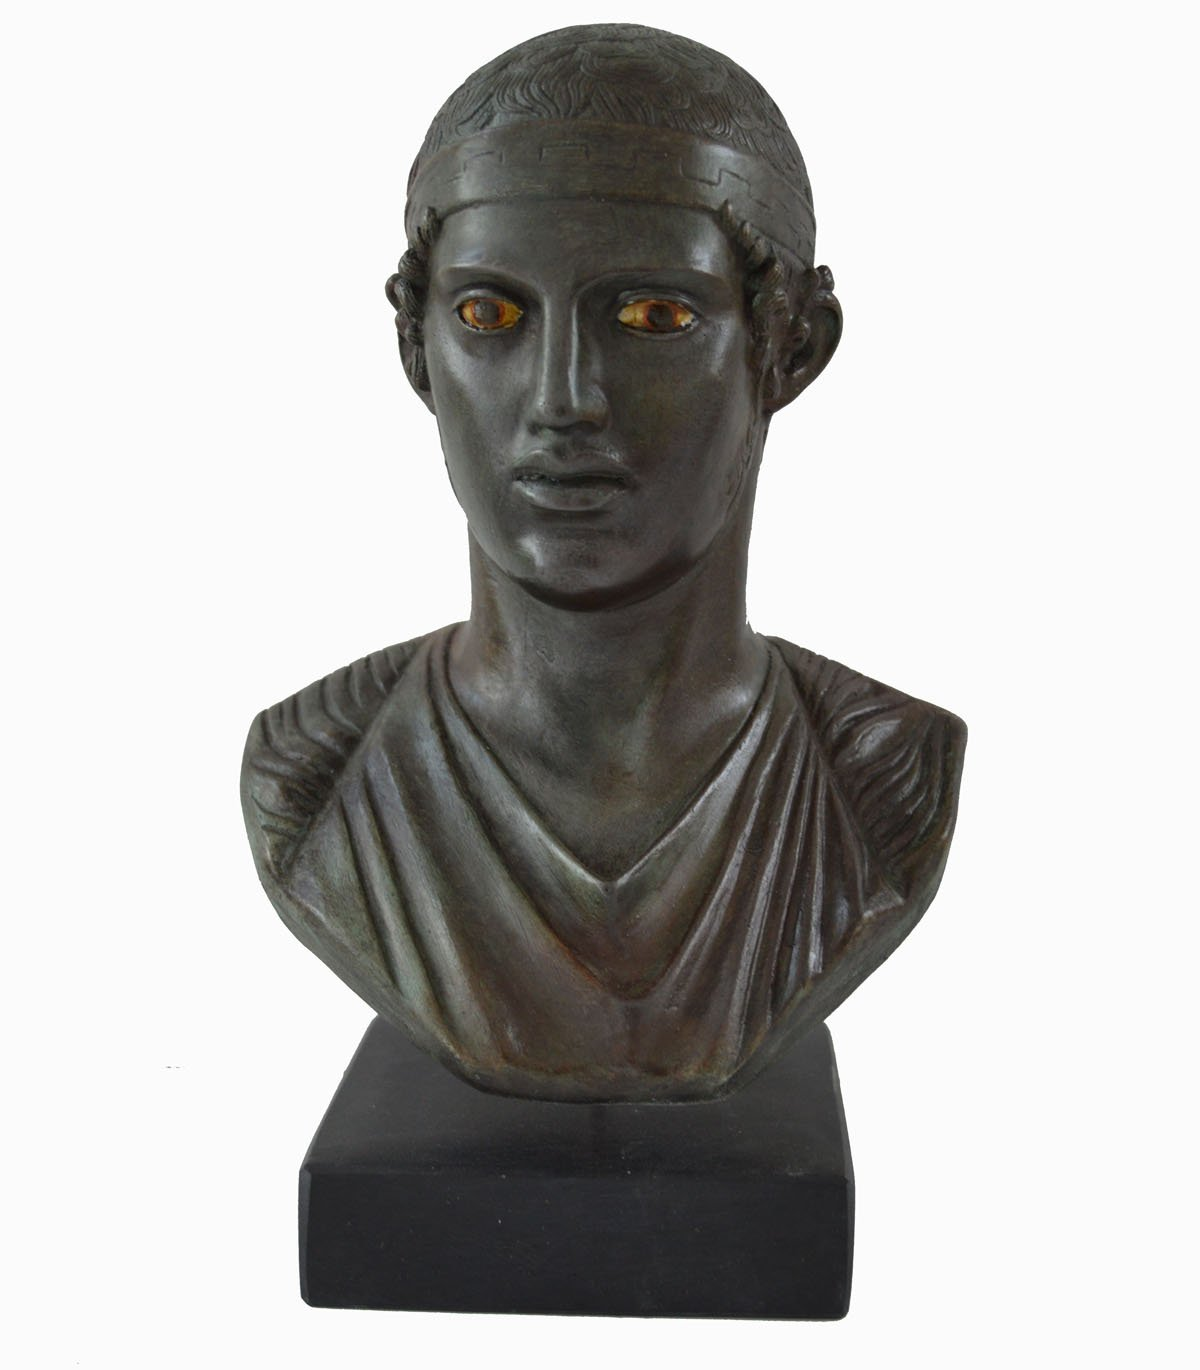 Charioteer of Delphi Bust with Bronze Color Effect - Museum replica